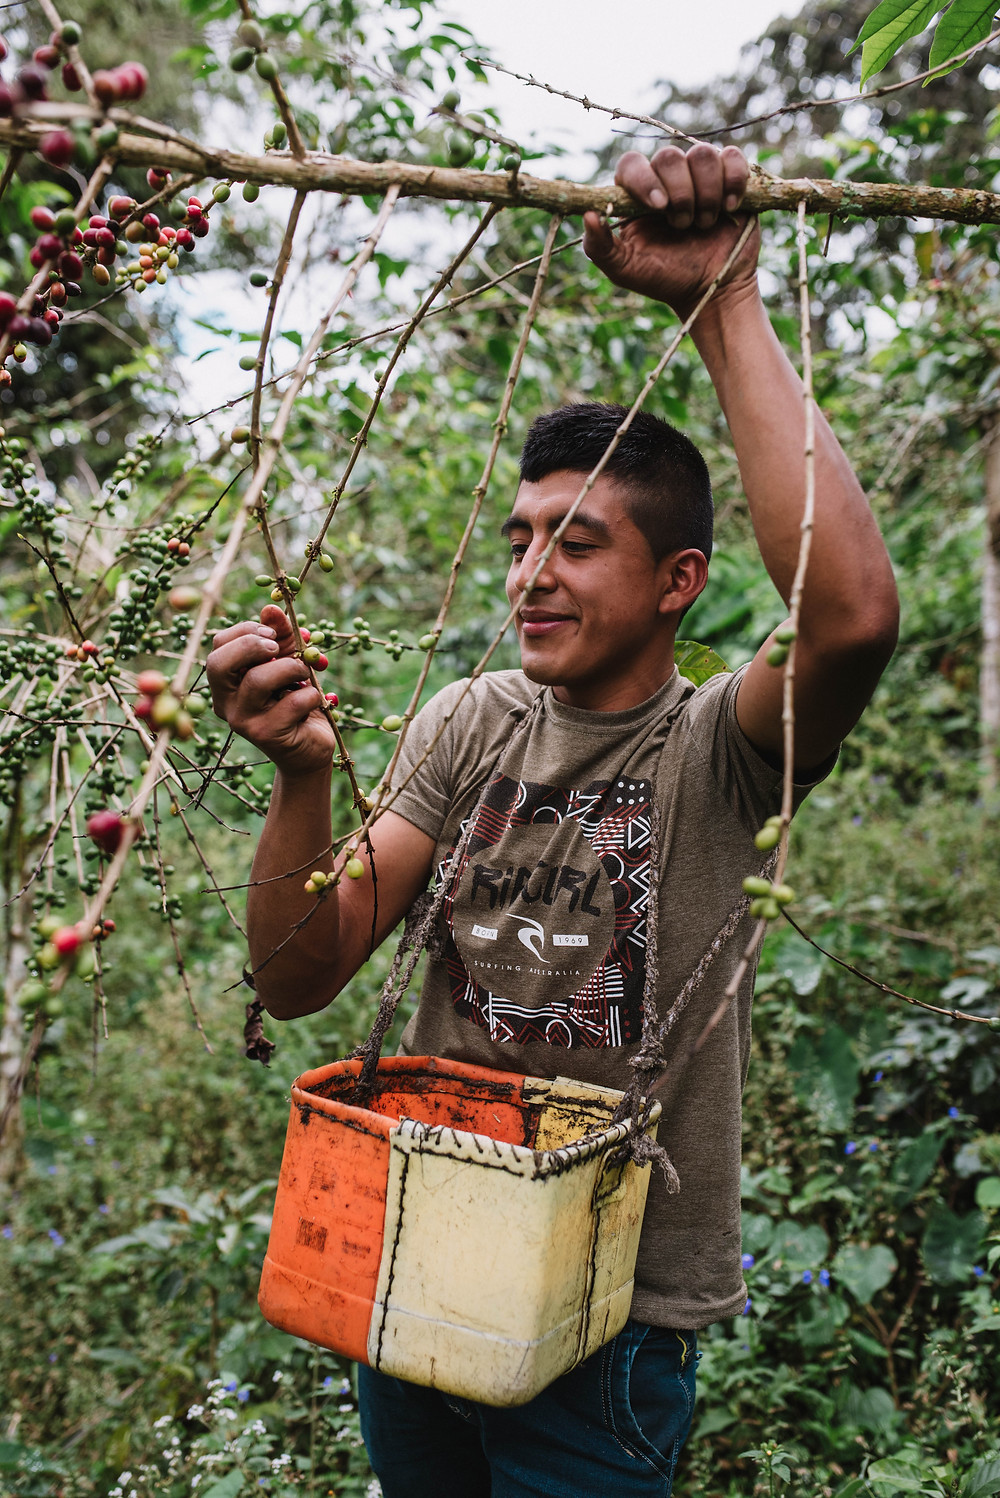 """Nolberto, age 21. Coffee farmer from San Ignacio, Peru. He was forced to assume the role as head-of-household when his father passed away when he was 15. When asked to describe how he'll improve his coffee production, he stated, """"By being innovative."""""""